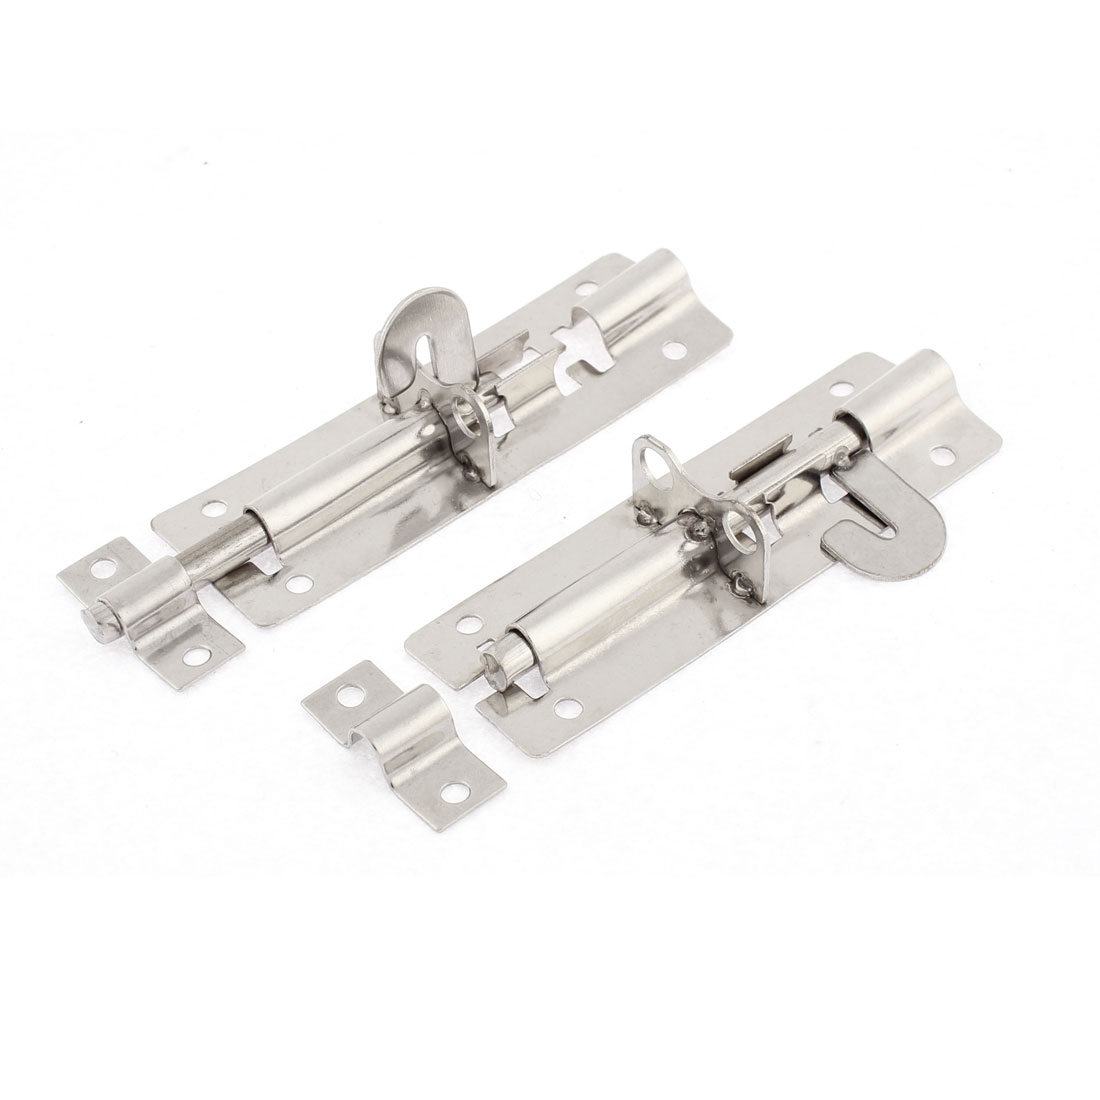 "Cabinet Door Safety Stainless Steel Barrel Bolt Latch Lock 4"" 2pcs"